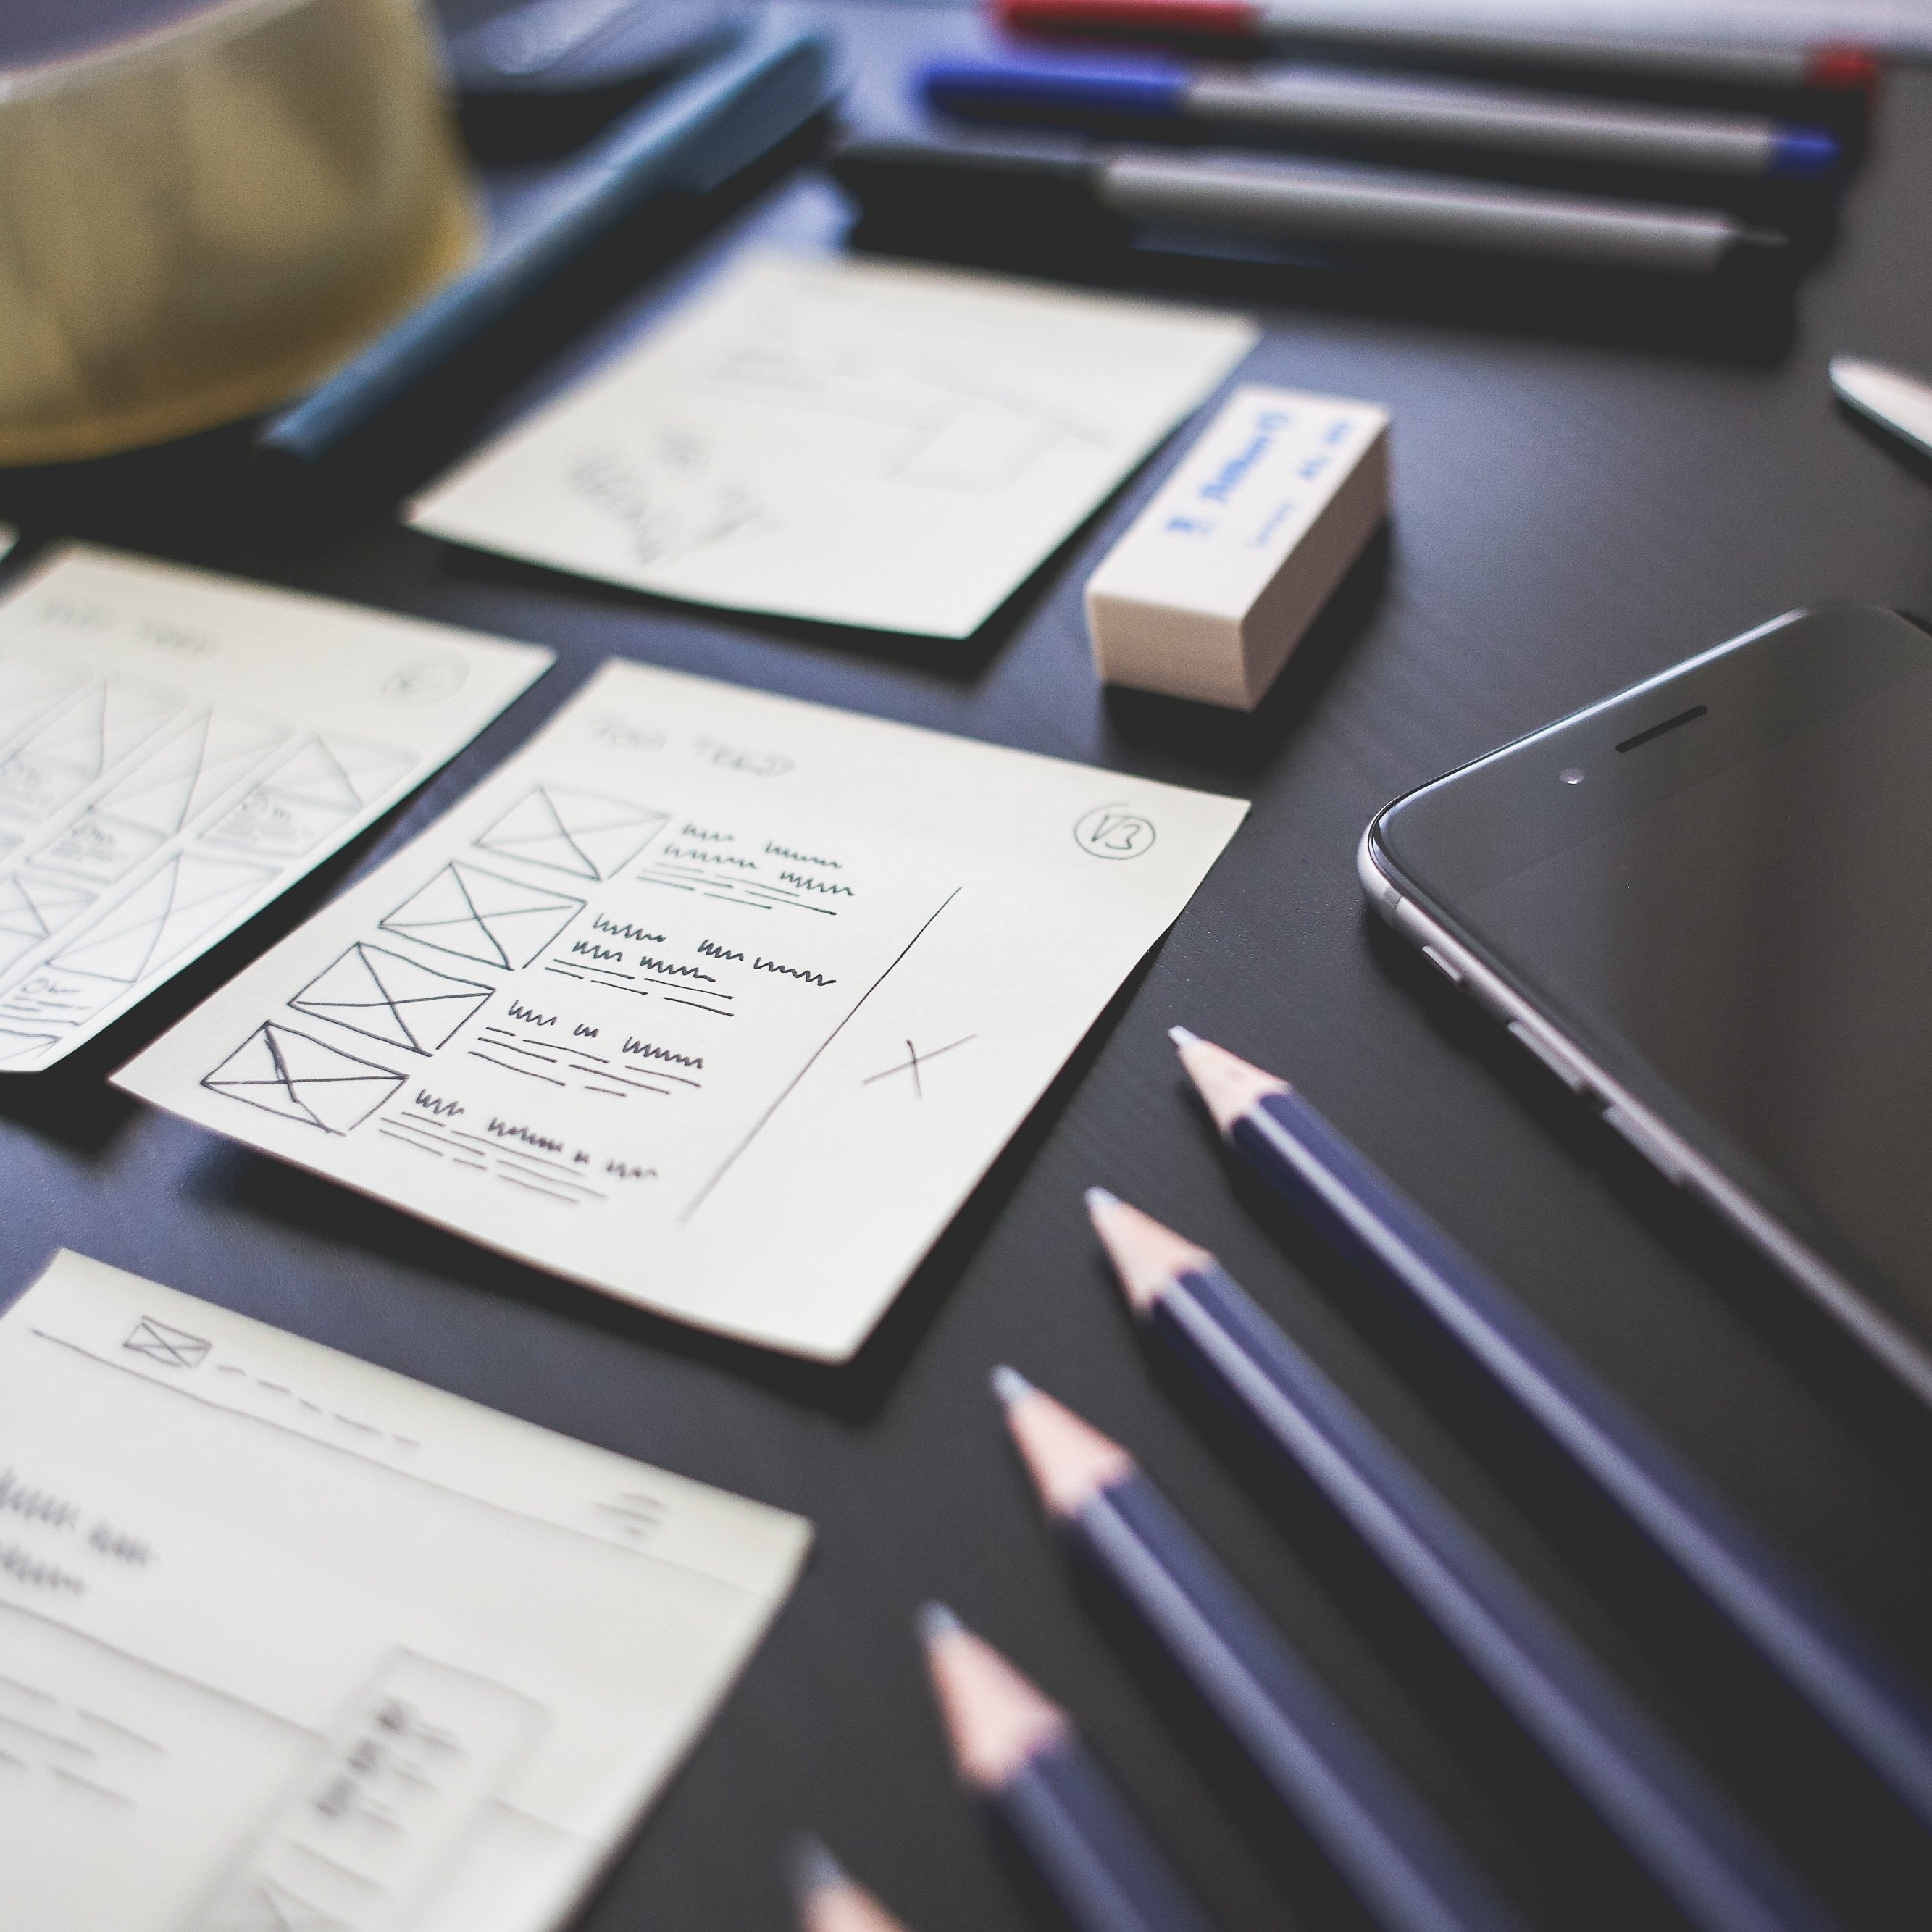 checklists and pencils on desk